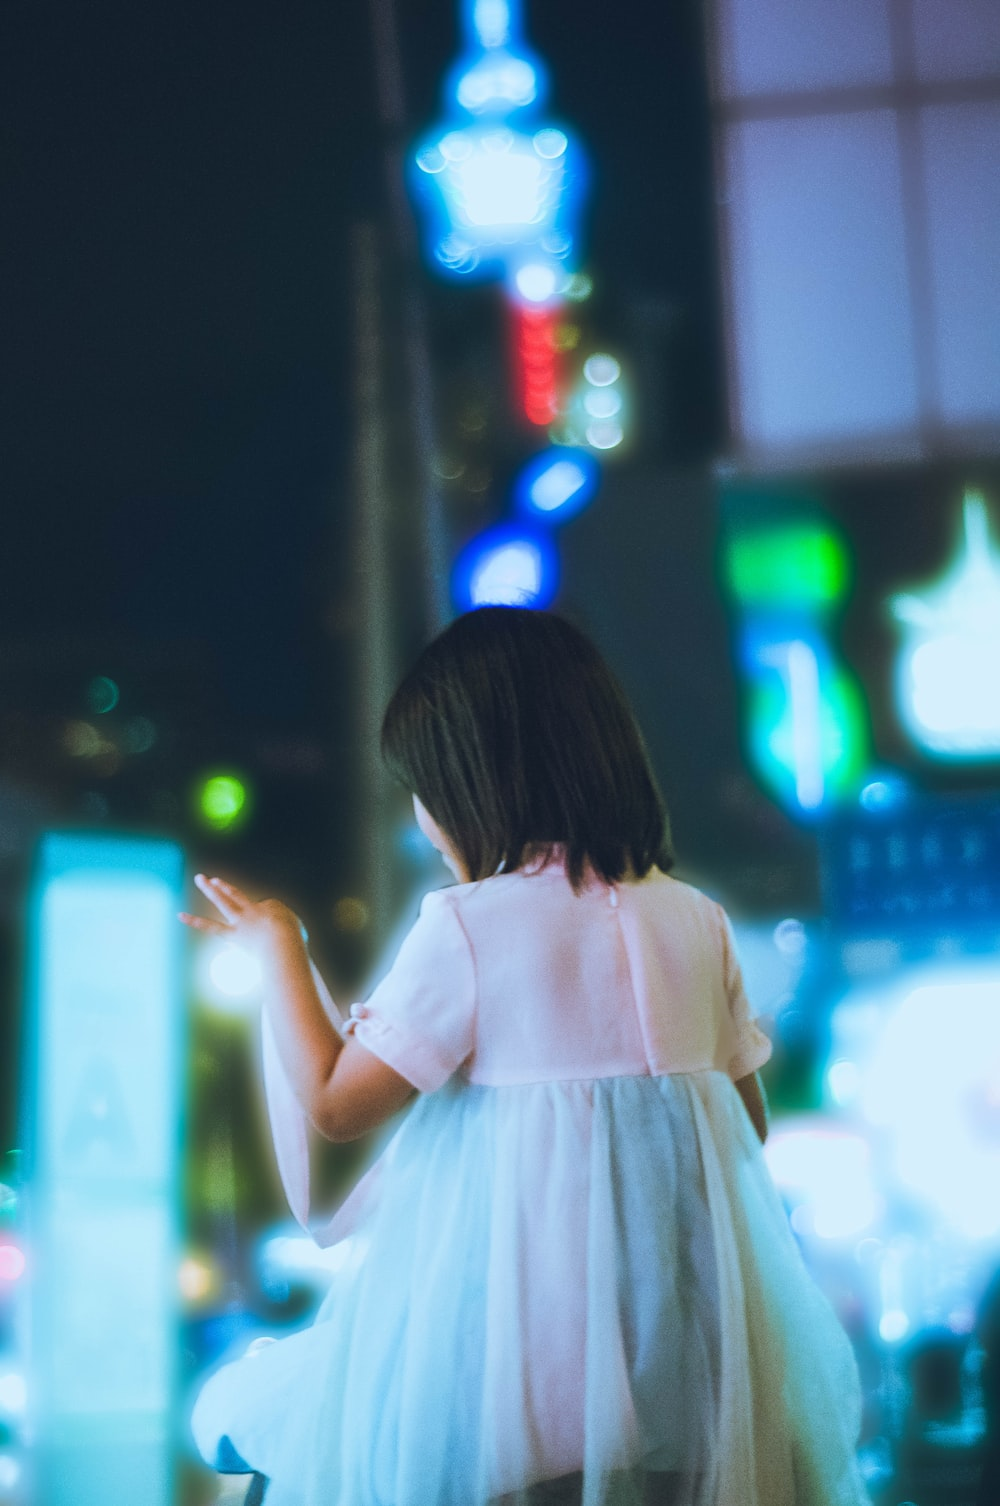 girl in white dress standing on street during night time